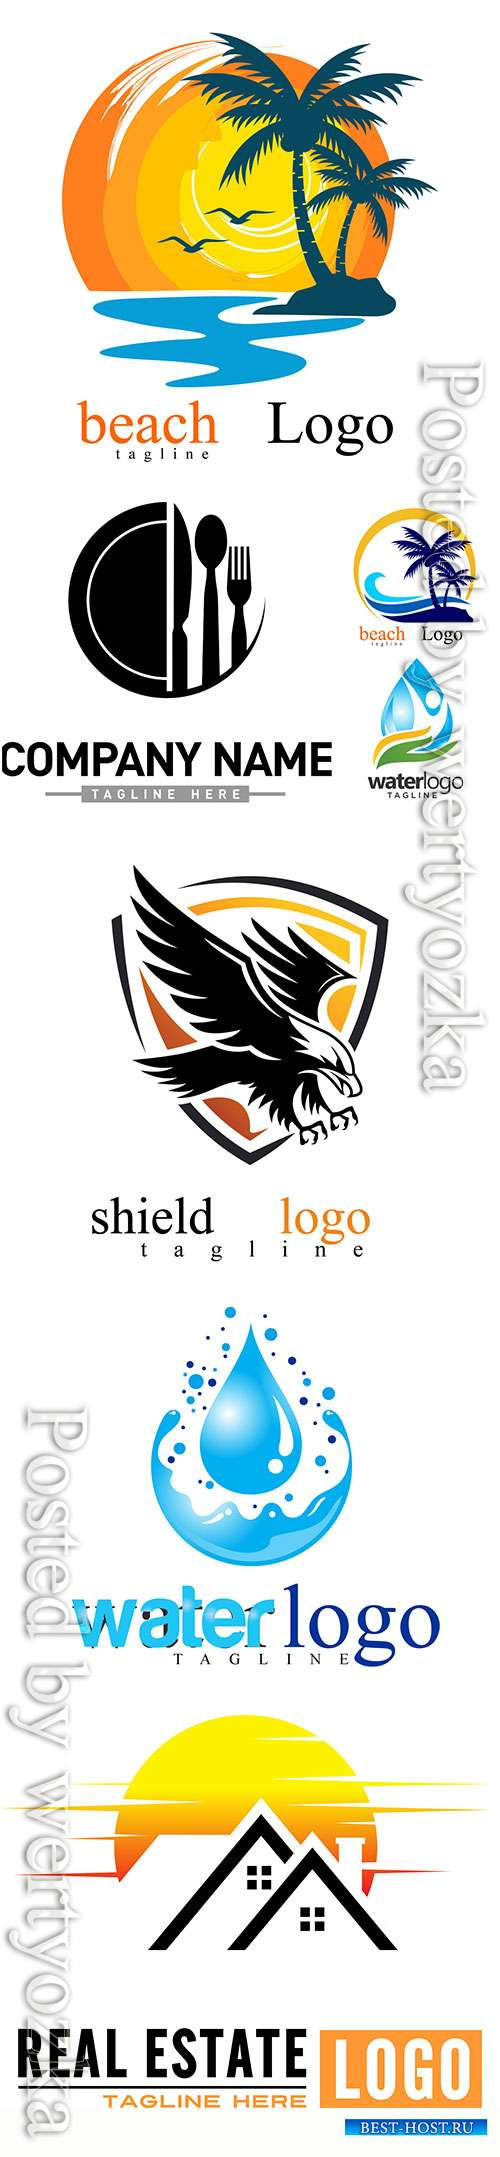 Logo vector design illustration